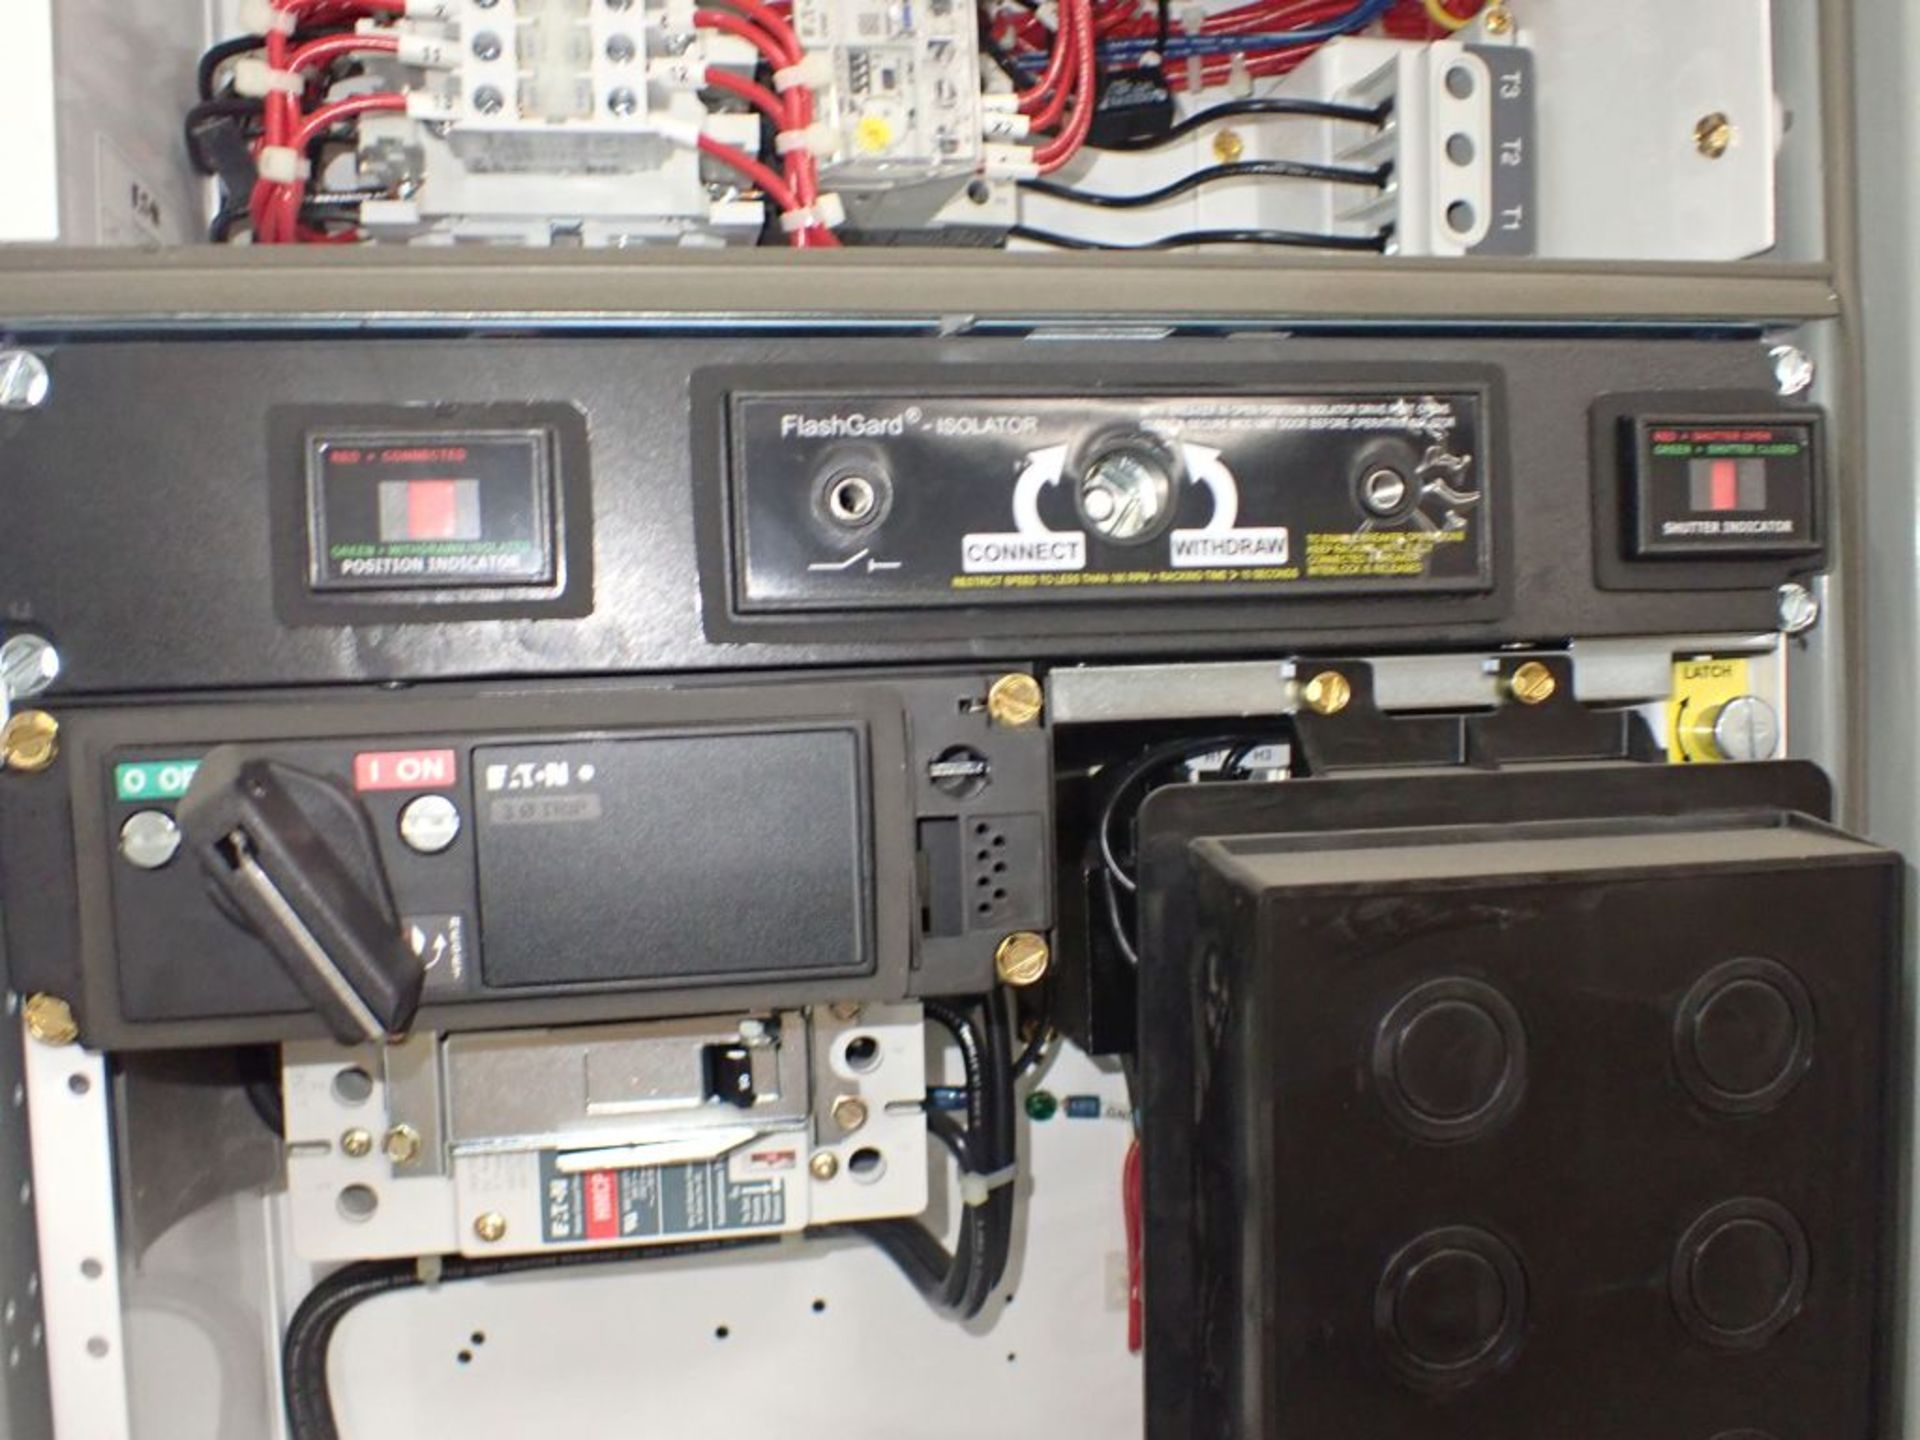 Eaton Freedom 2100 Series Motor Control Center   (2) F206-15A-10HP; (2) SVX900-50A, with Eaton AF - Image 45 of 48